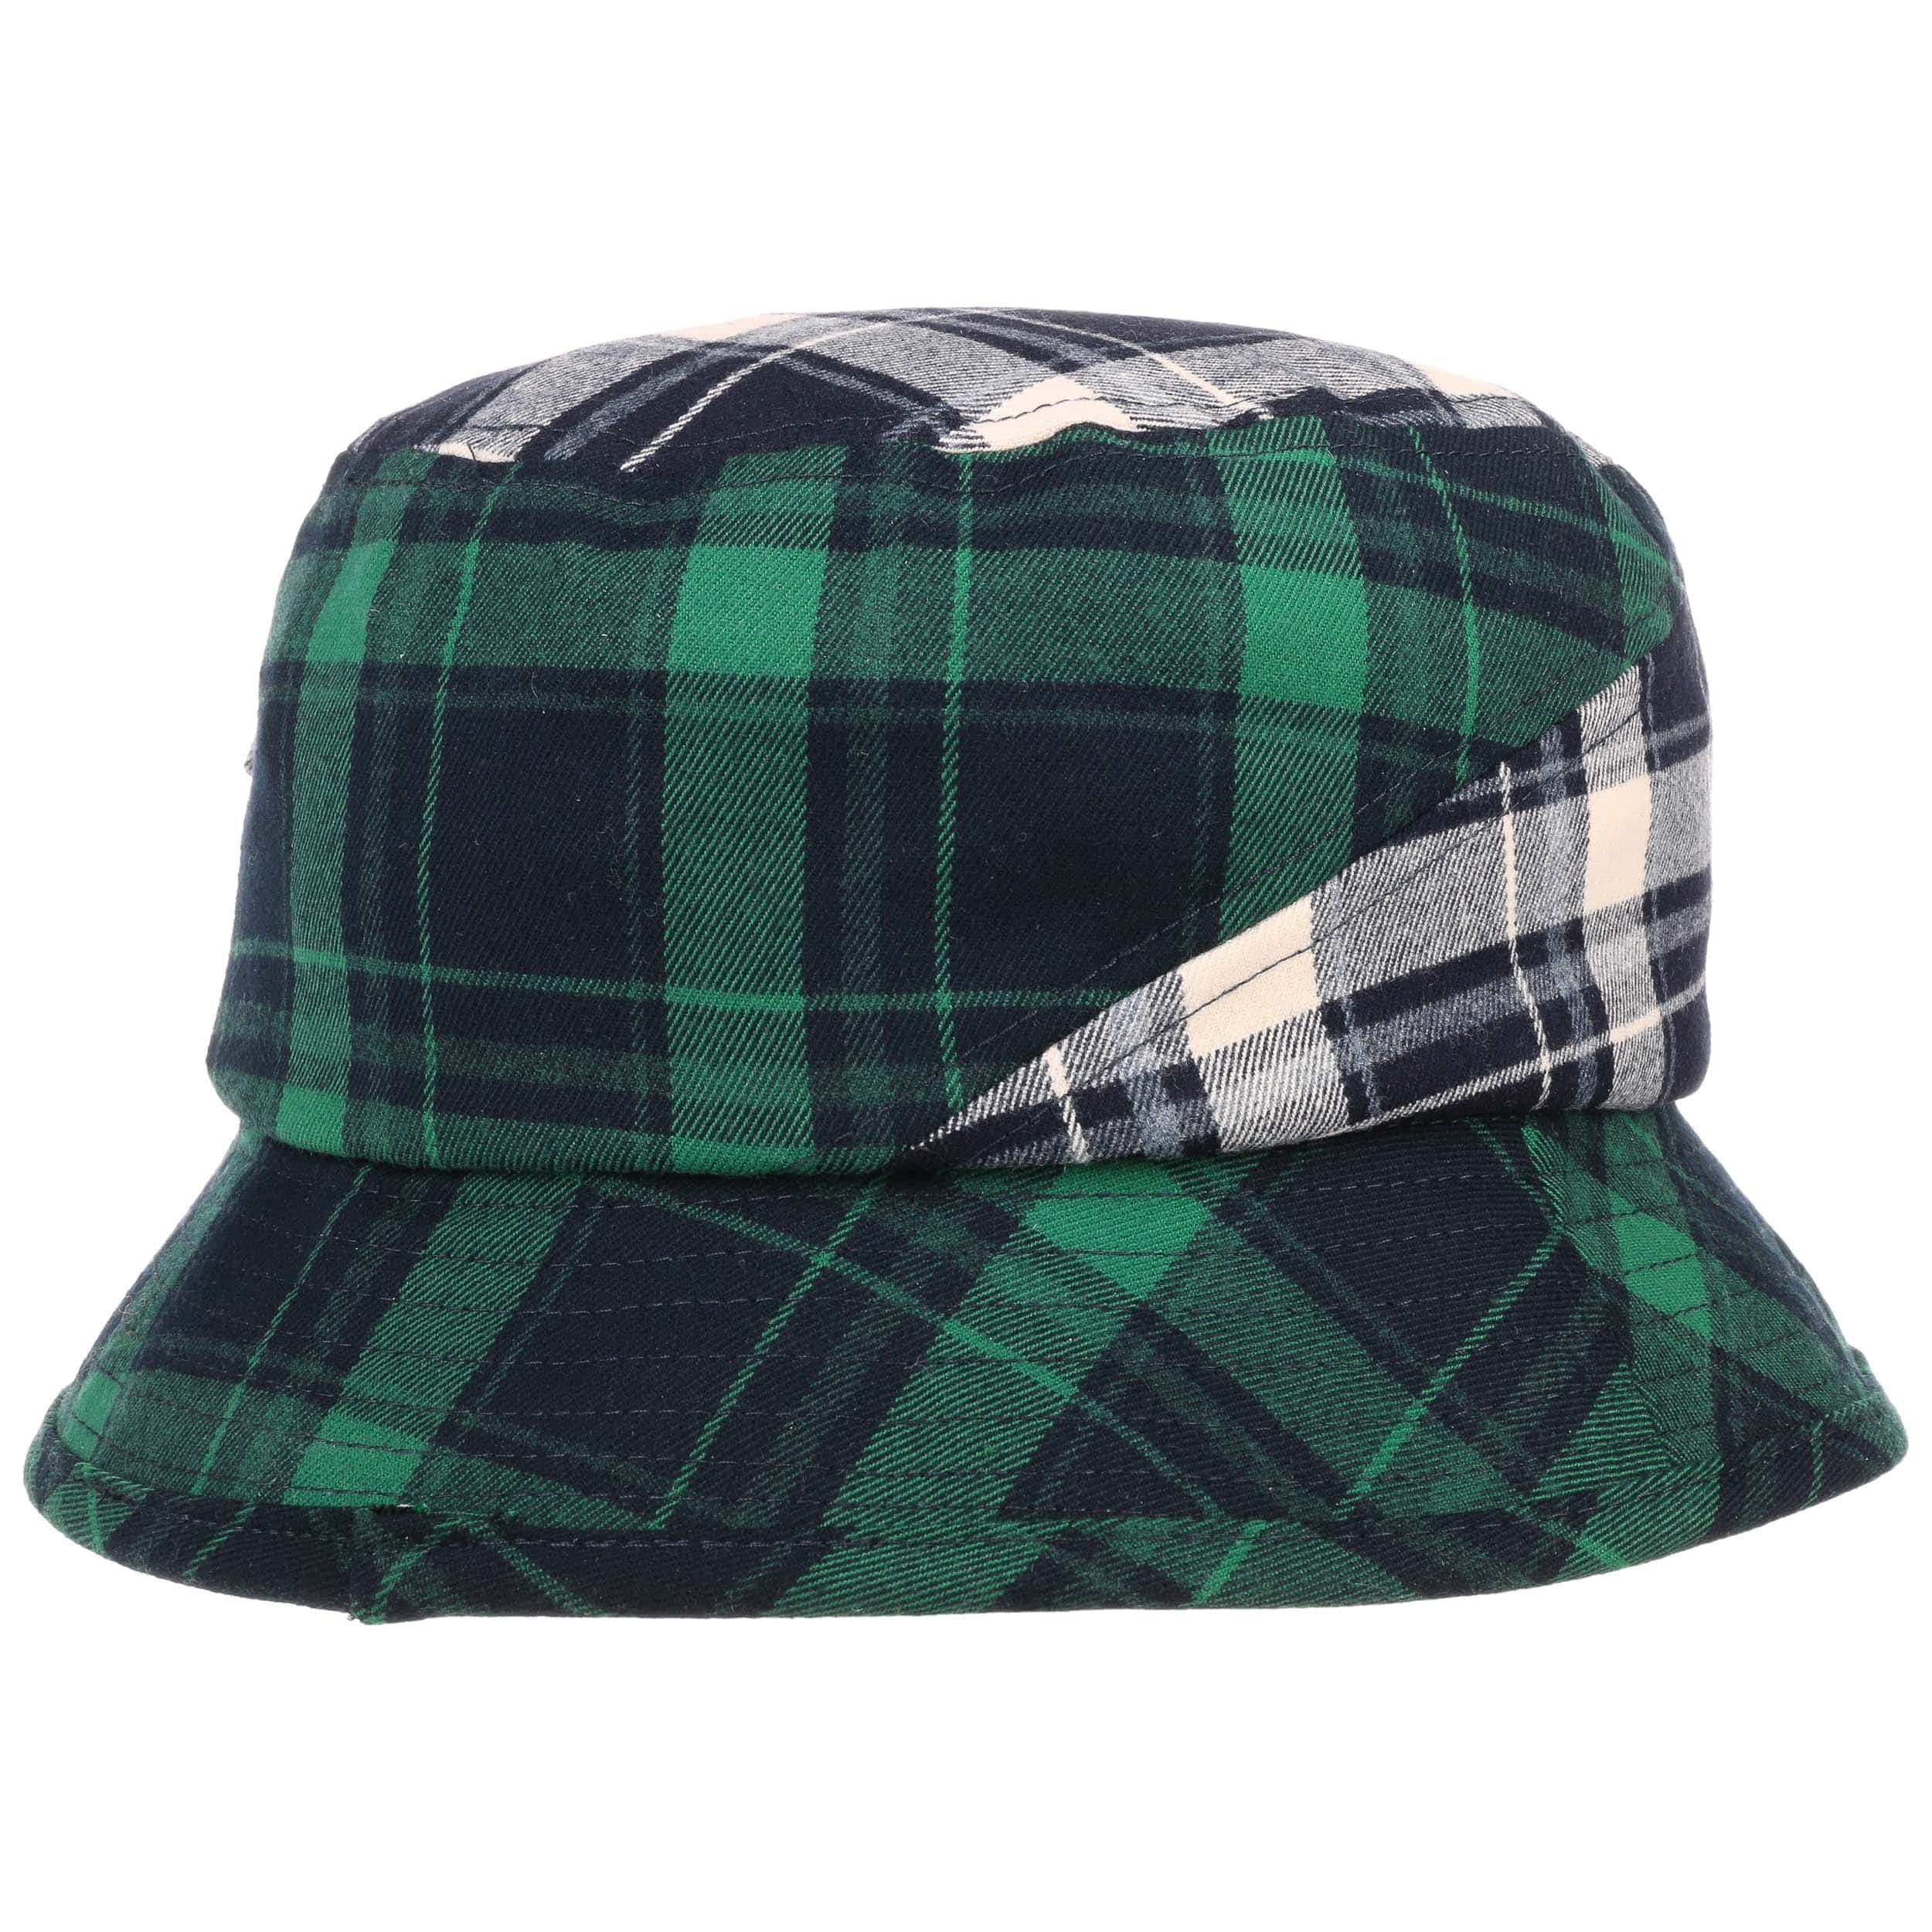 919a167a192 ... Plaid on Plaid Bucket Hat by Kangol - blue-green 3 ...